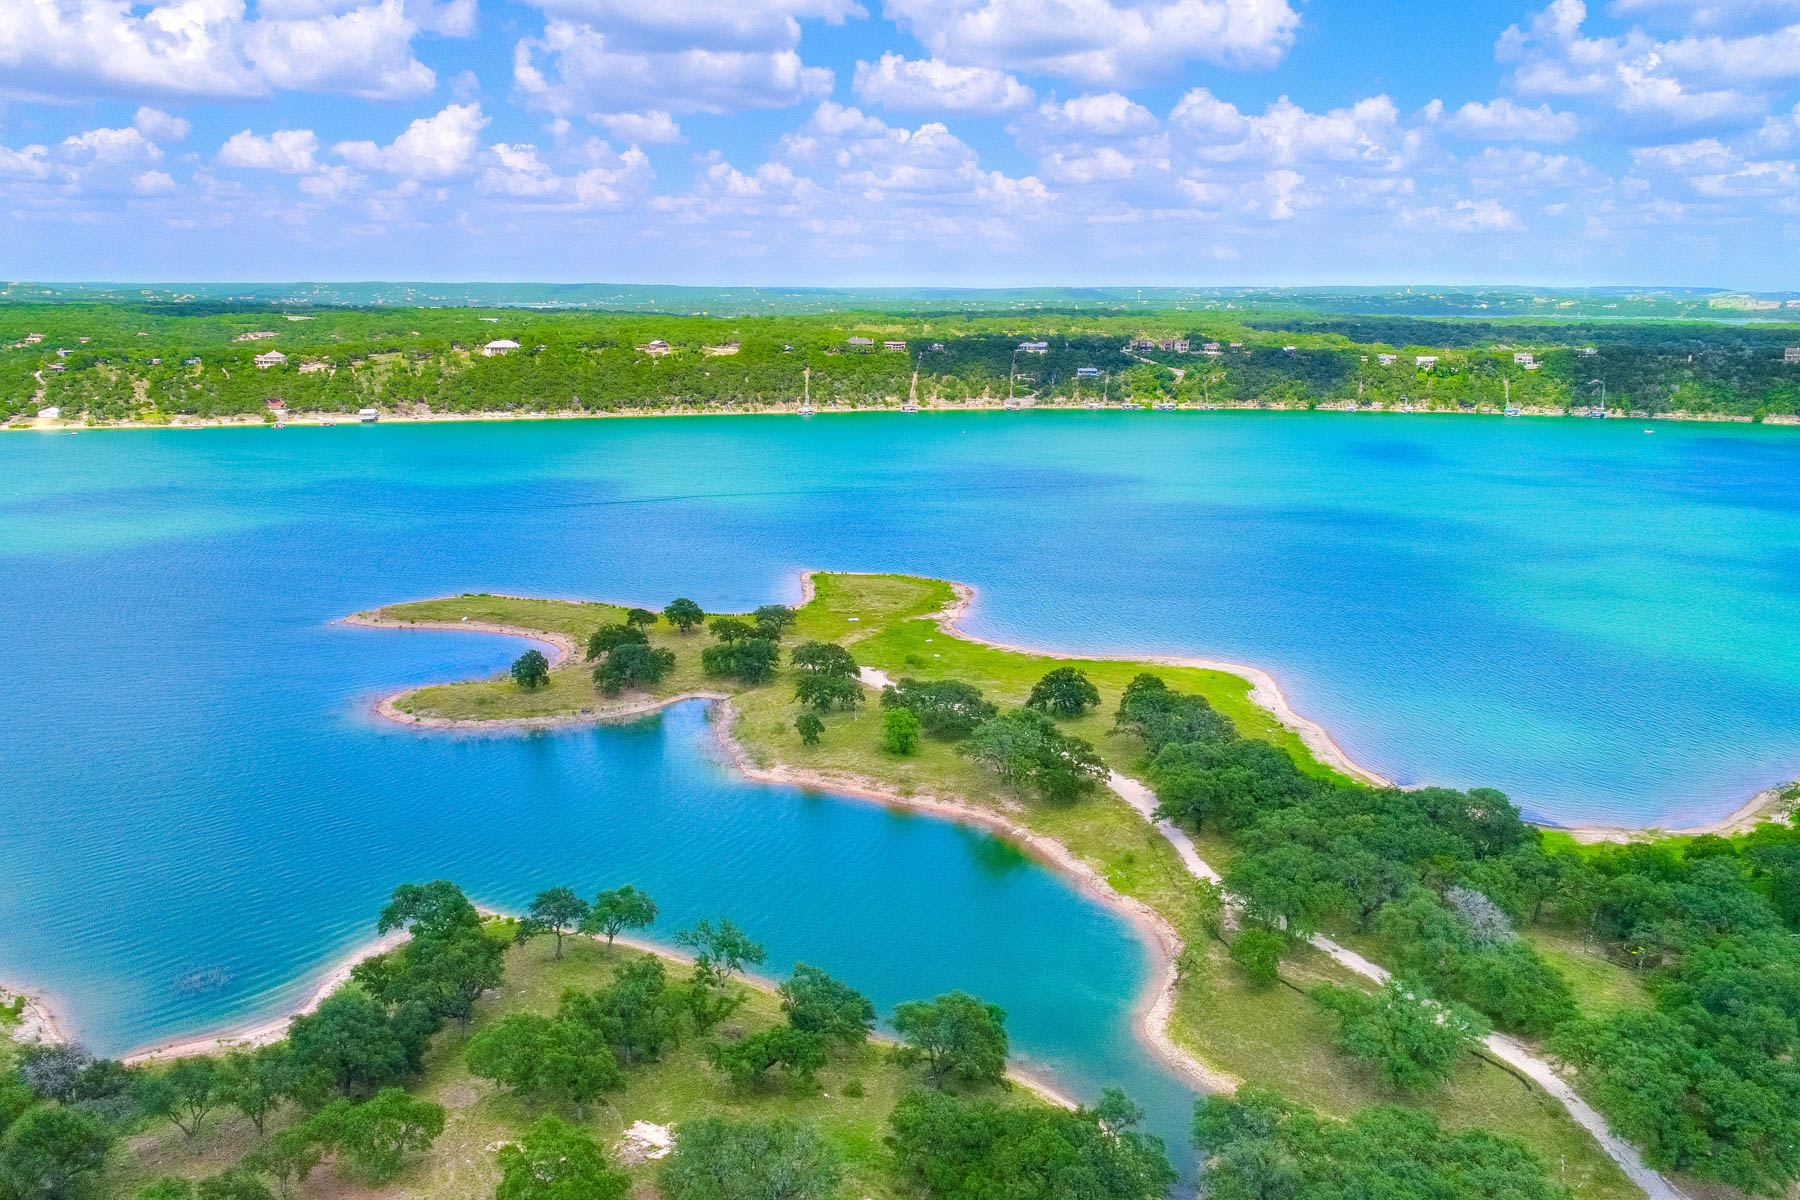 토지 용 매매 에 The Reserve on Lake Travis: 18 Waterfront Acres 2200/08 Cypress Club Pointe, Spicewood, 텍사스, 78669 미국